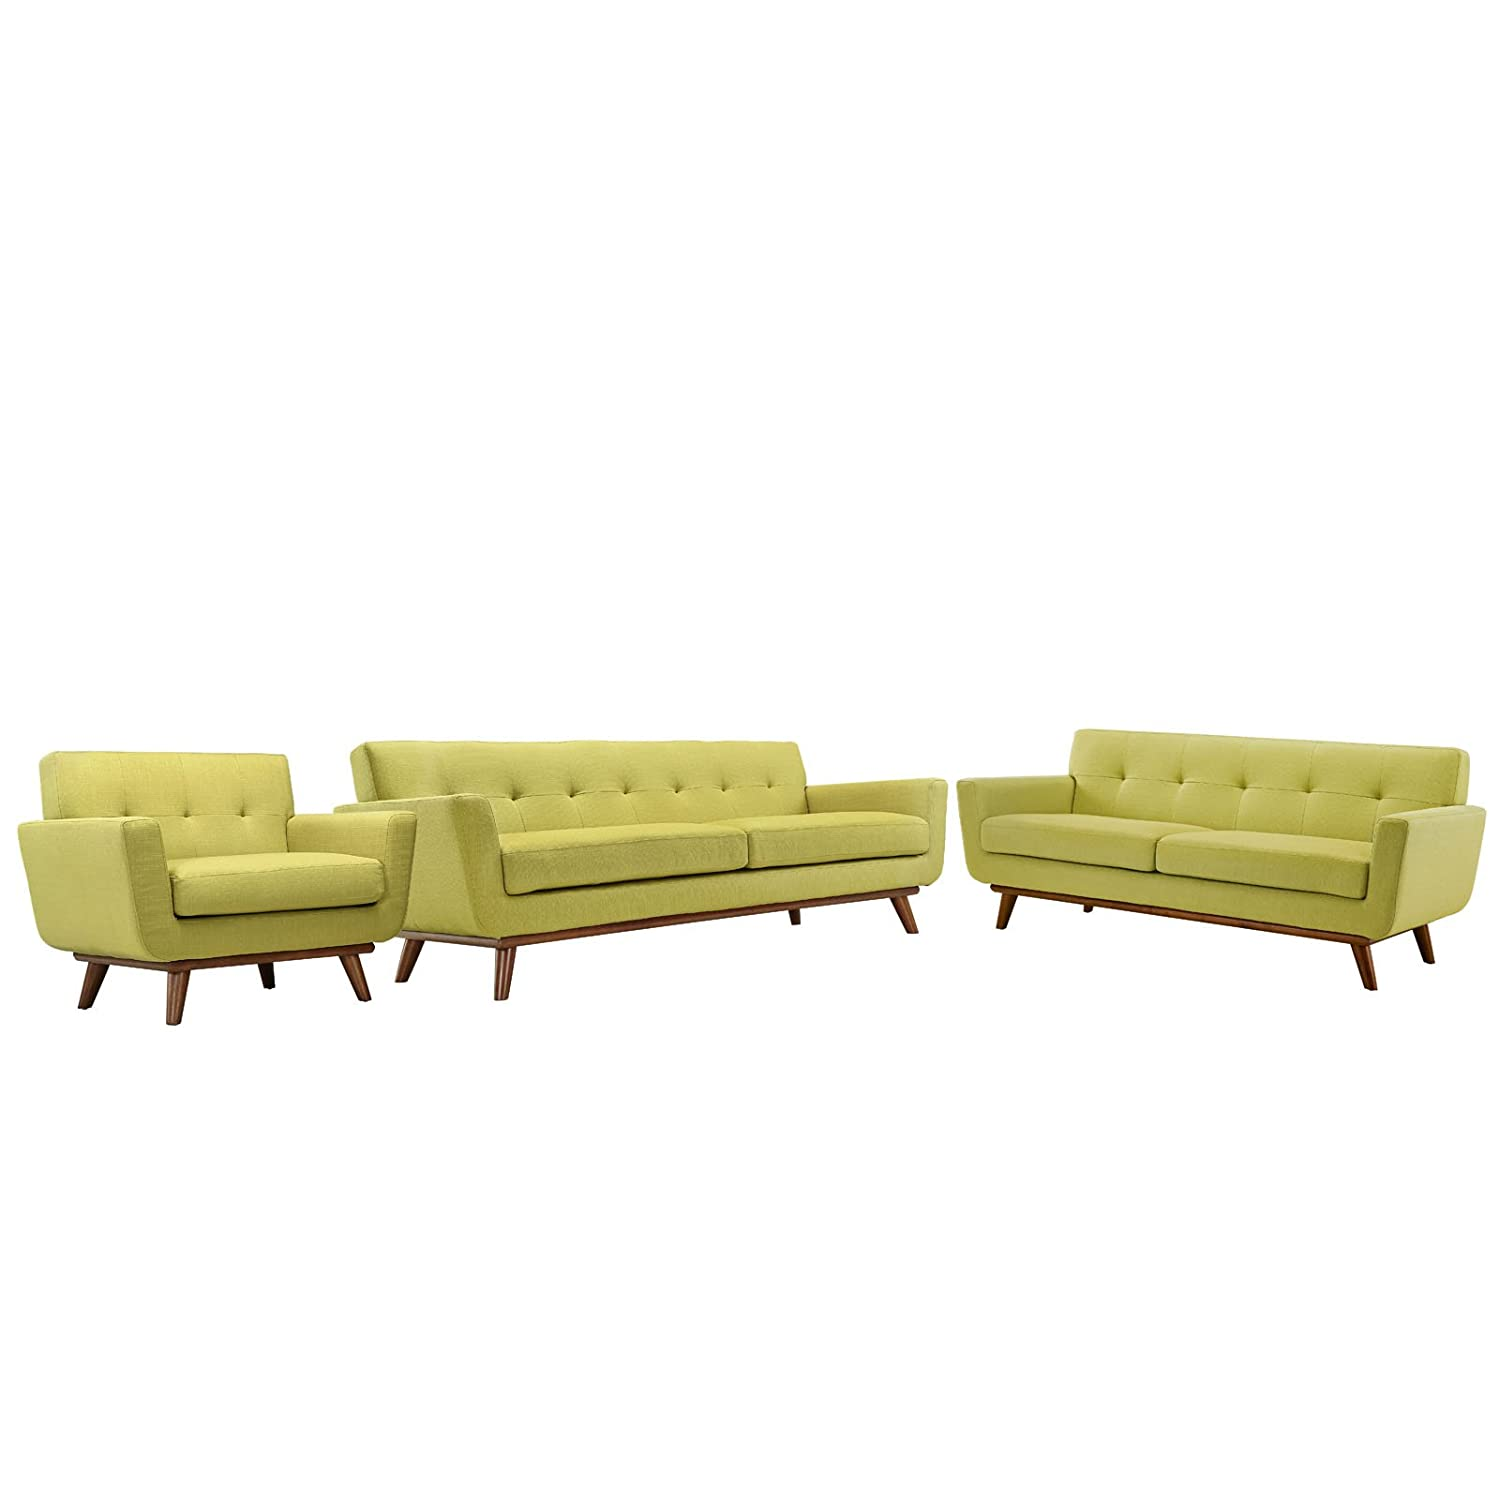 Modern Contemporary Sofa Loveseat and Armchair (set of three) - Green Fabric